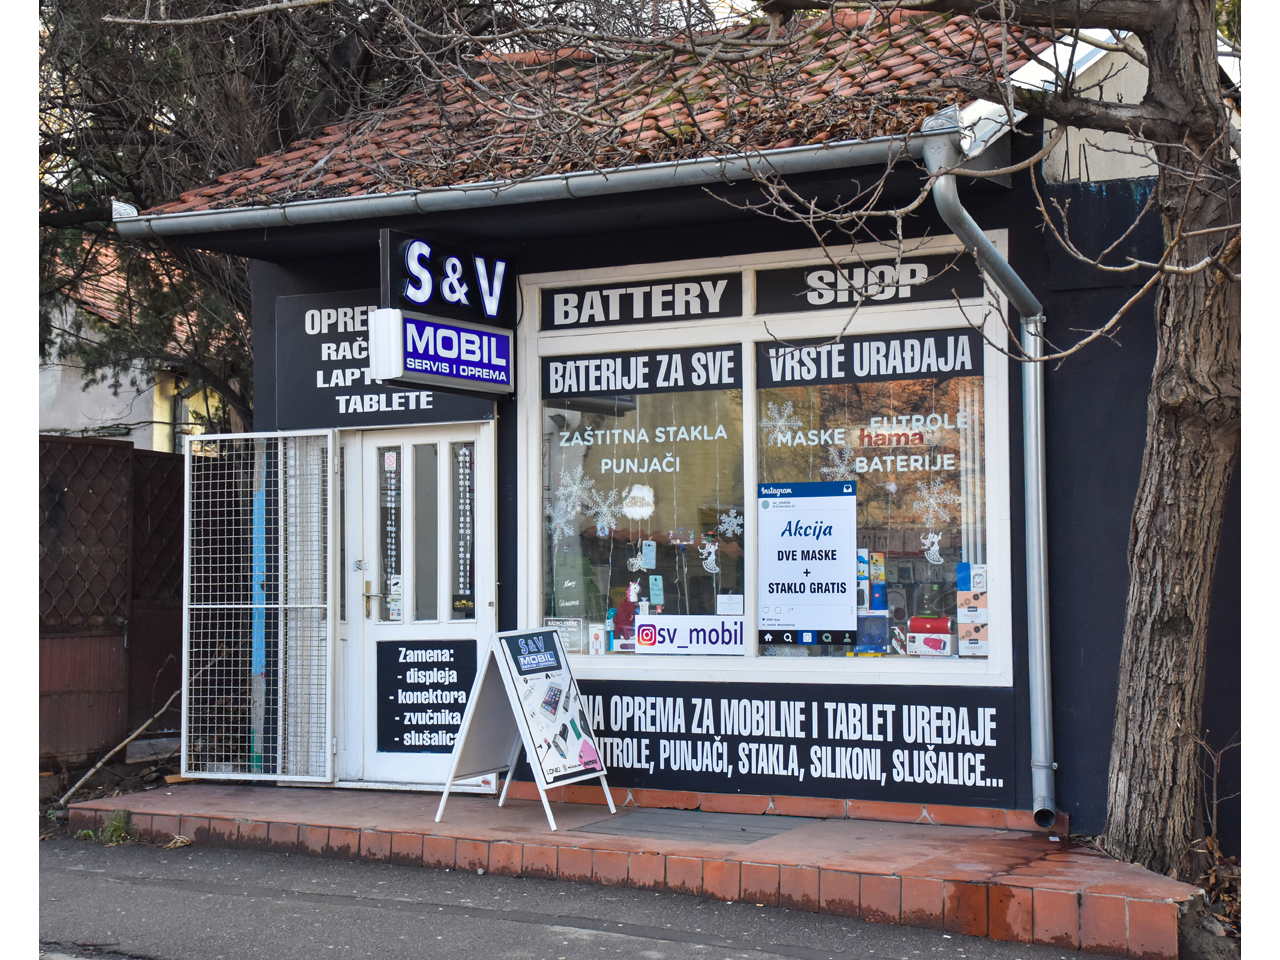 MOBIL SHOP S&V Mobile phones service Beograd